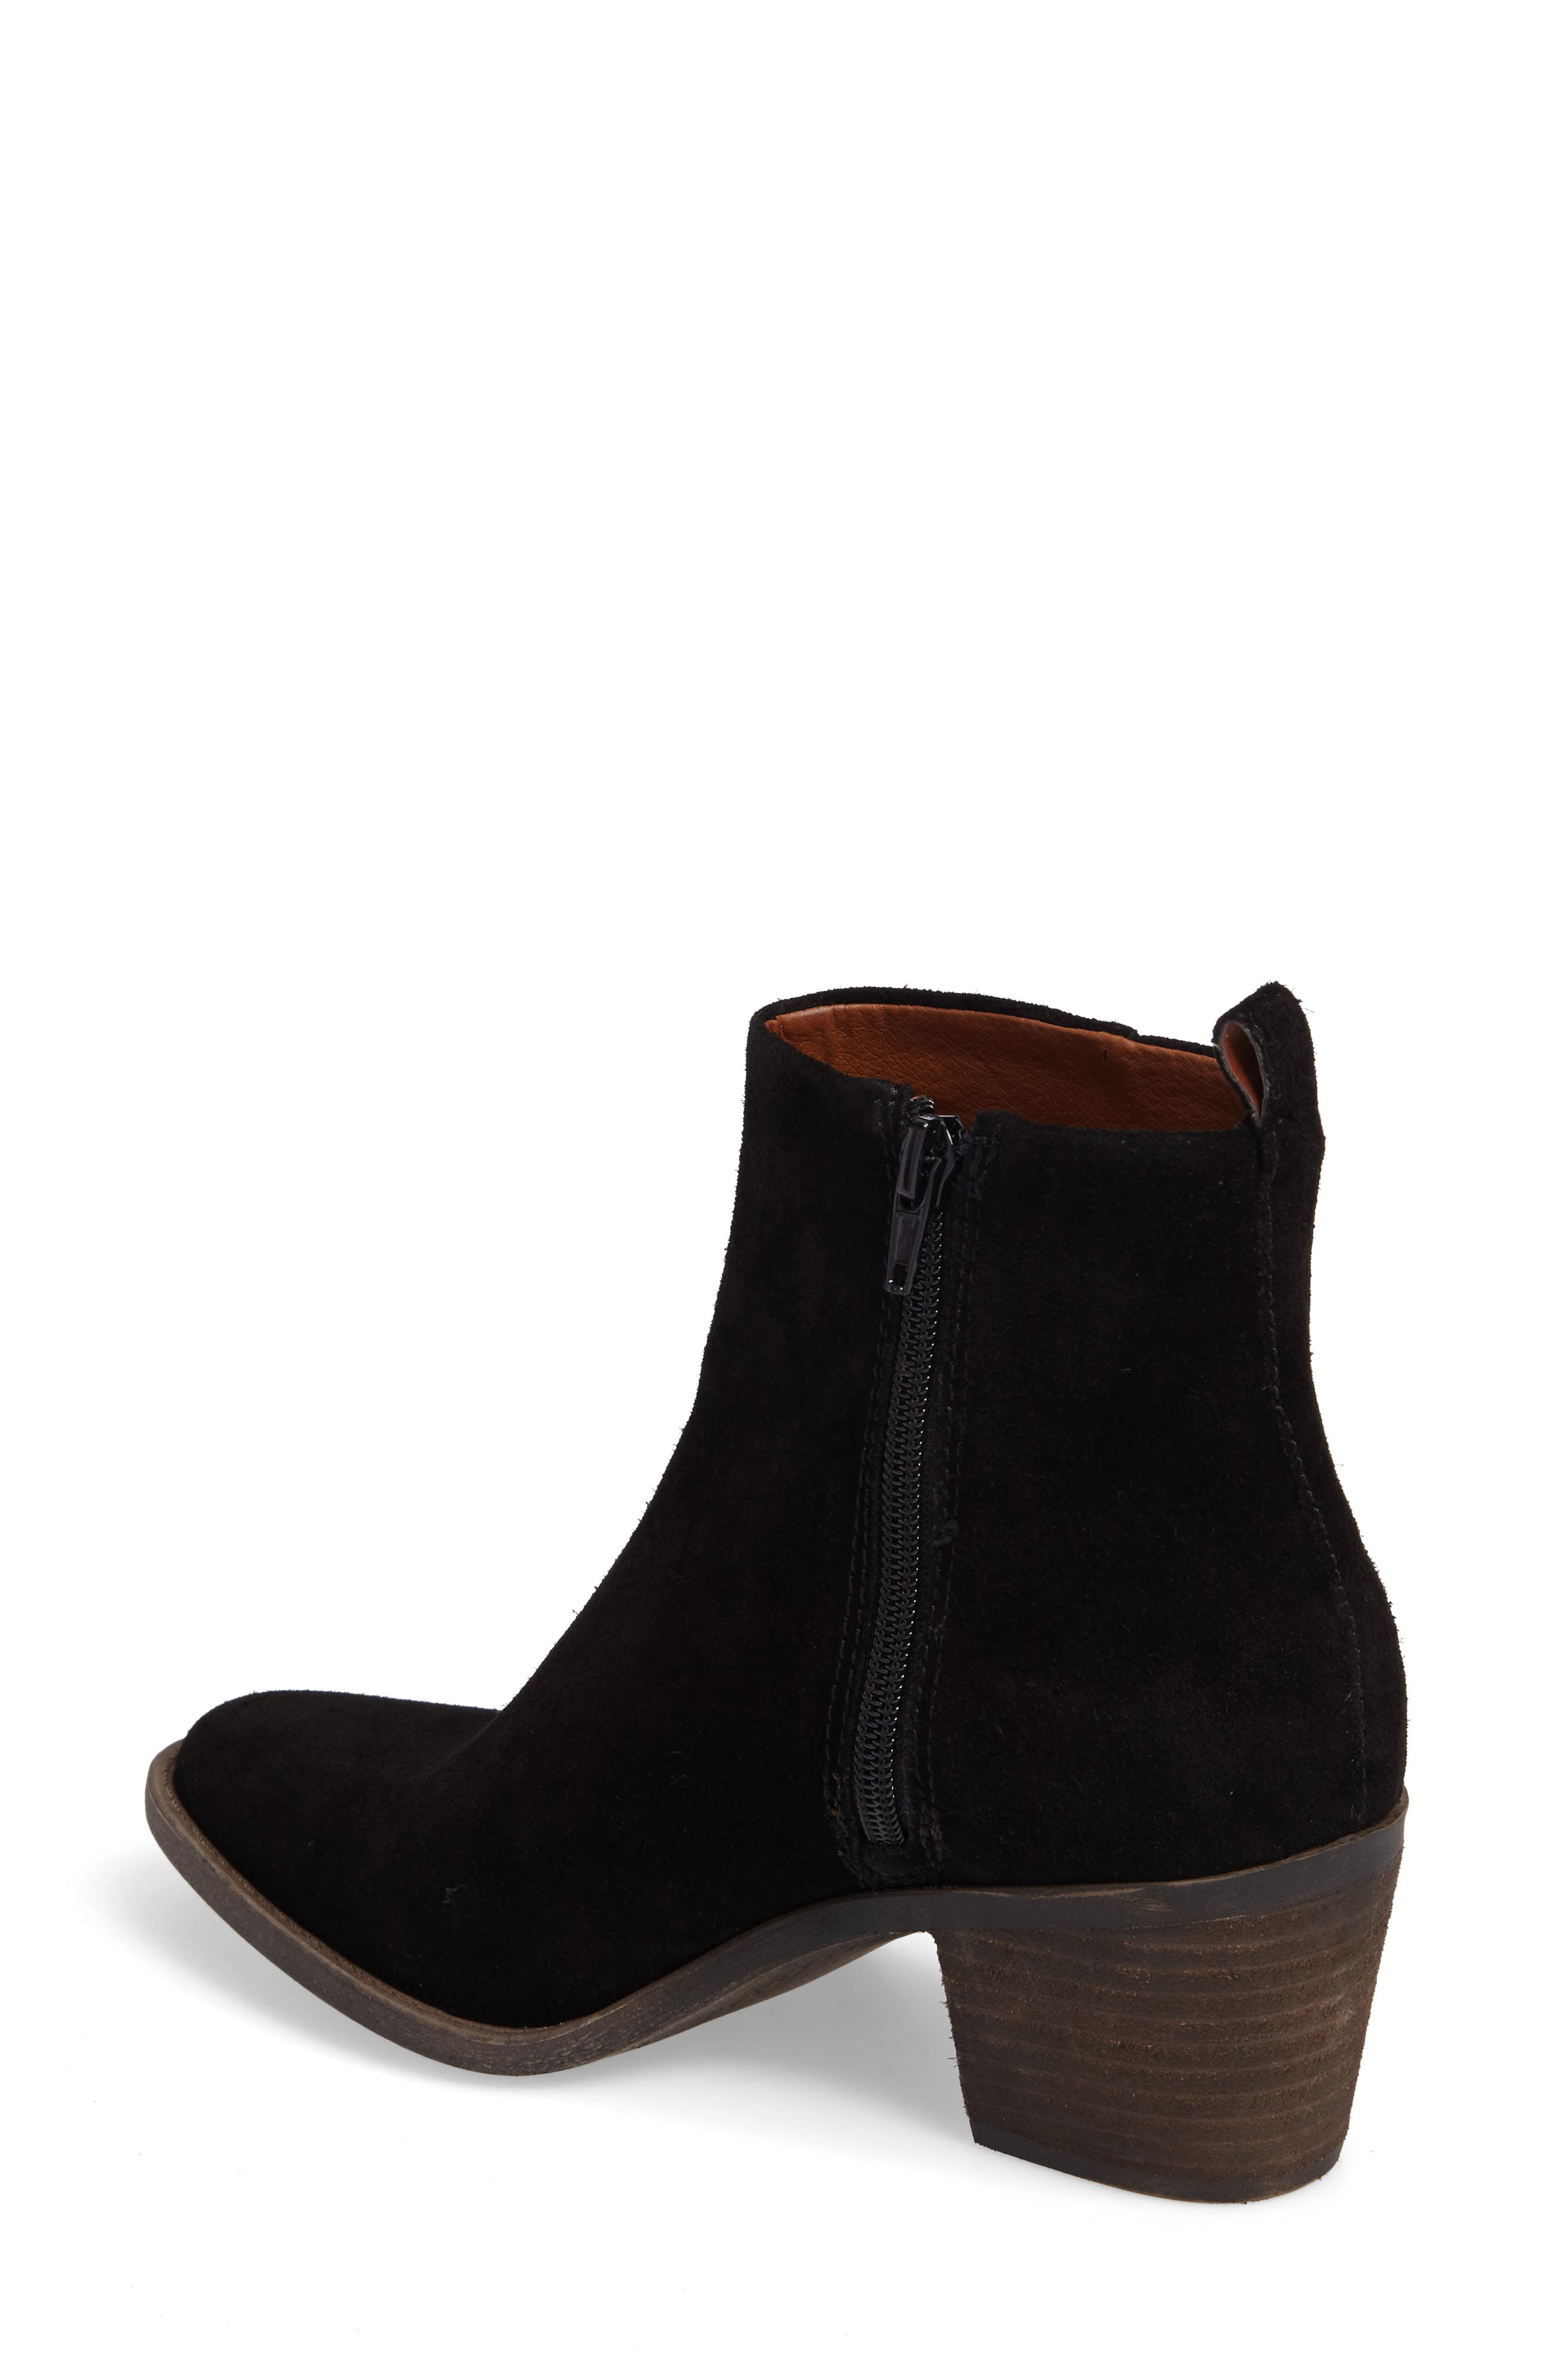 LUCKY BRAND,                             Natania Bootie,                             Alternate thumbnail 2, color,                             001